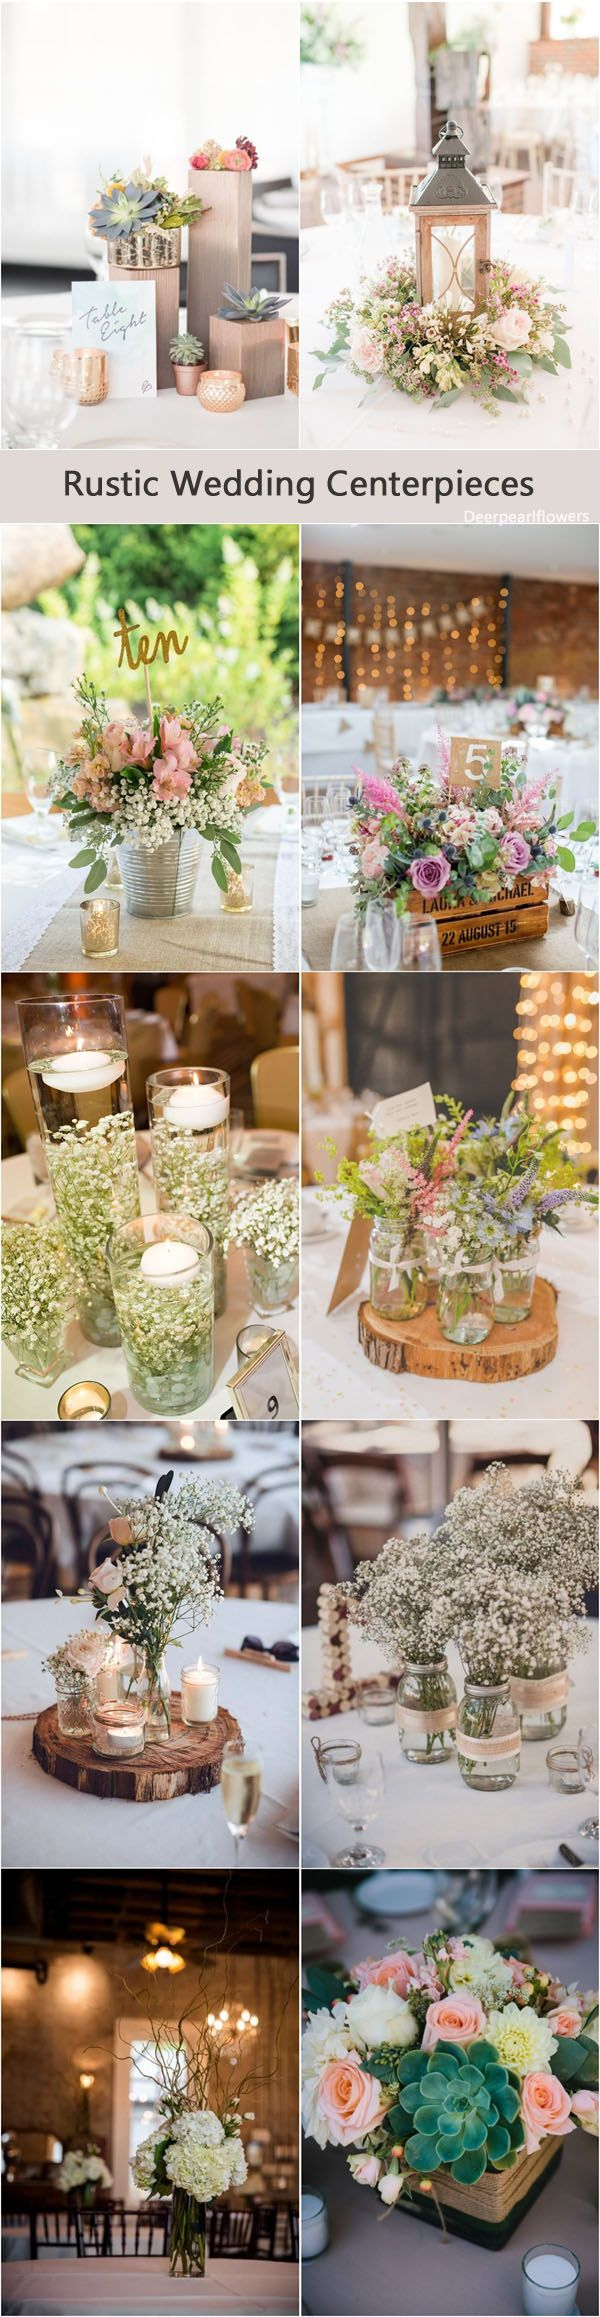 Best 25 rustic wedding centerpieces ideas on pinterest rustic 70 easy rustic wedding ideas that you could try in 2017 junglespirit Choice Image